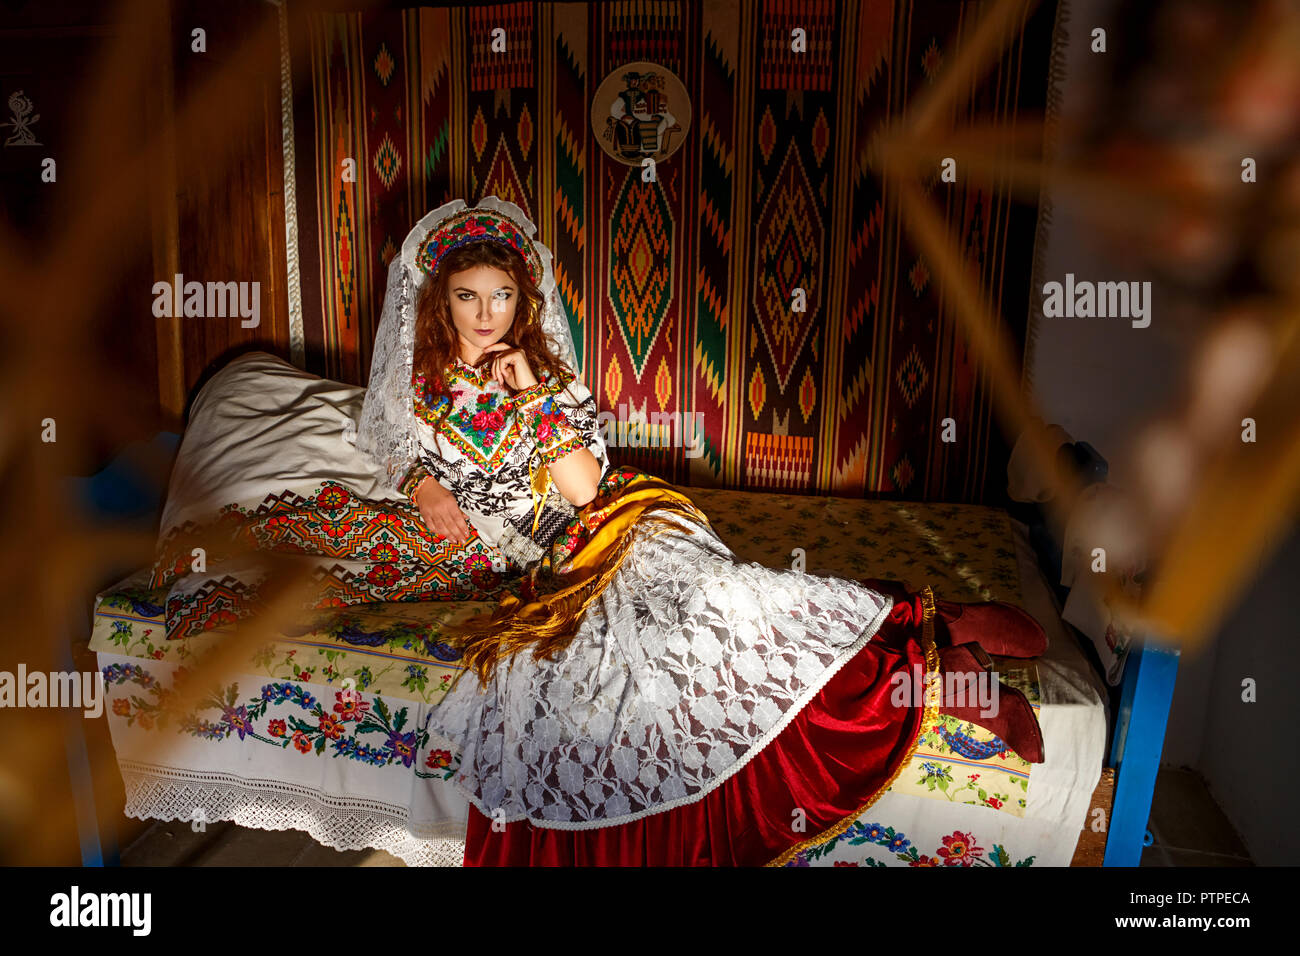 beautiful girl in a hut in national Slavic costume. - Stock Image